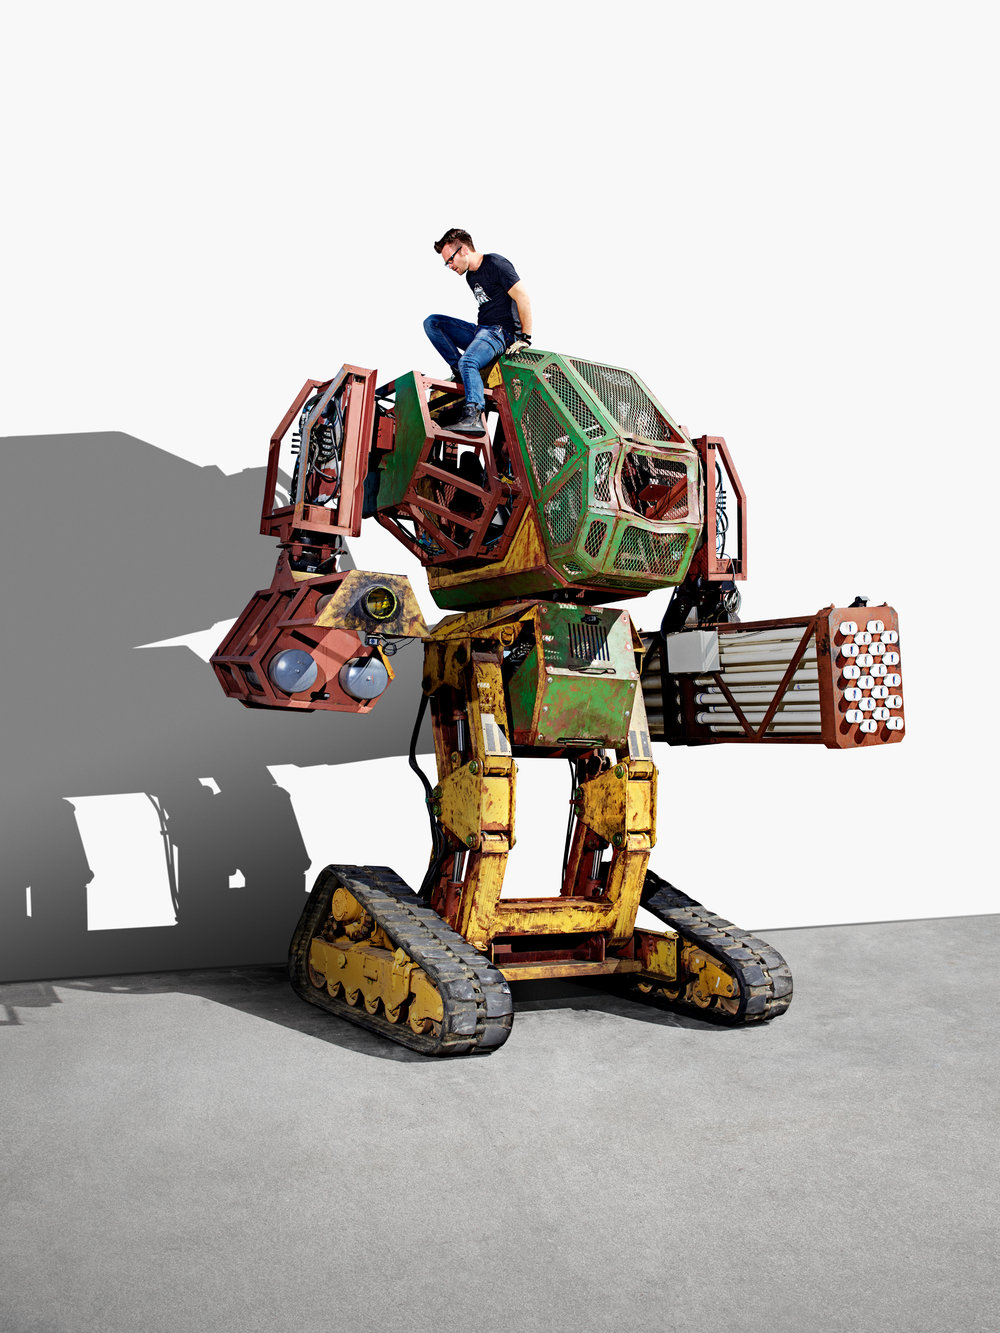 Matt Oehrlein with the Mark III at the MegaBots headquarters. Oakland, CA.